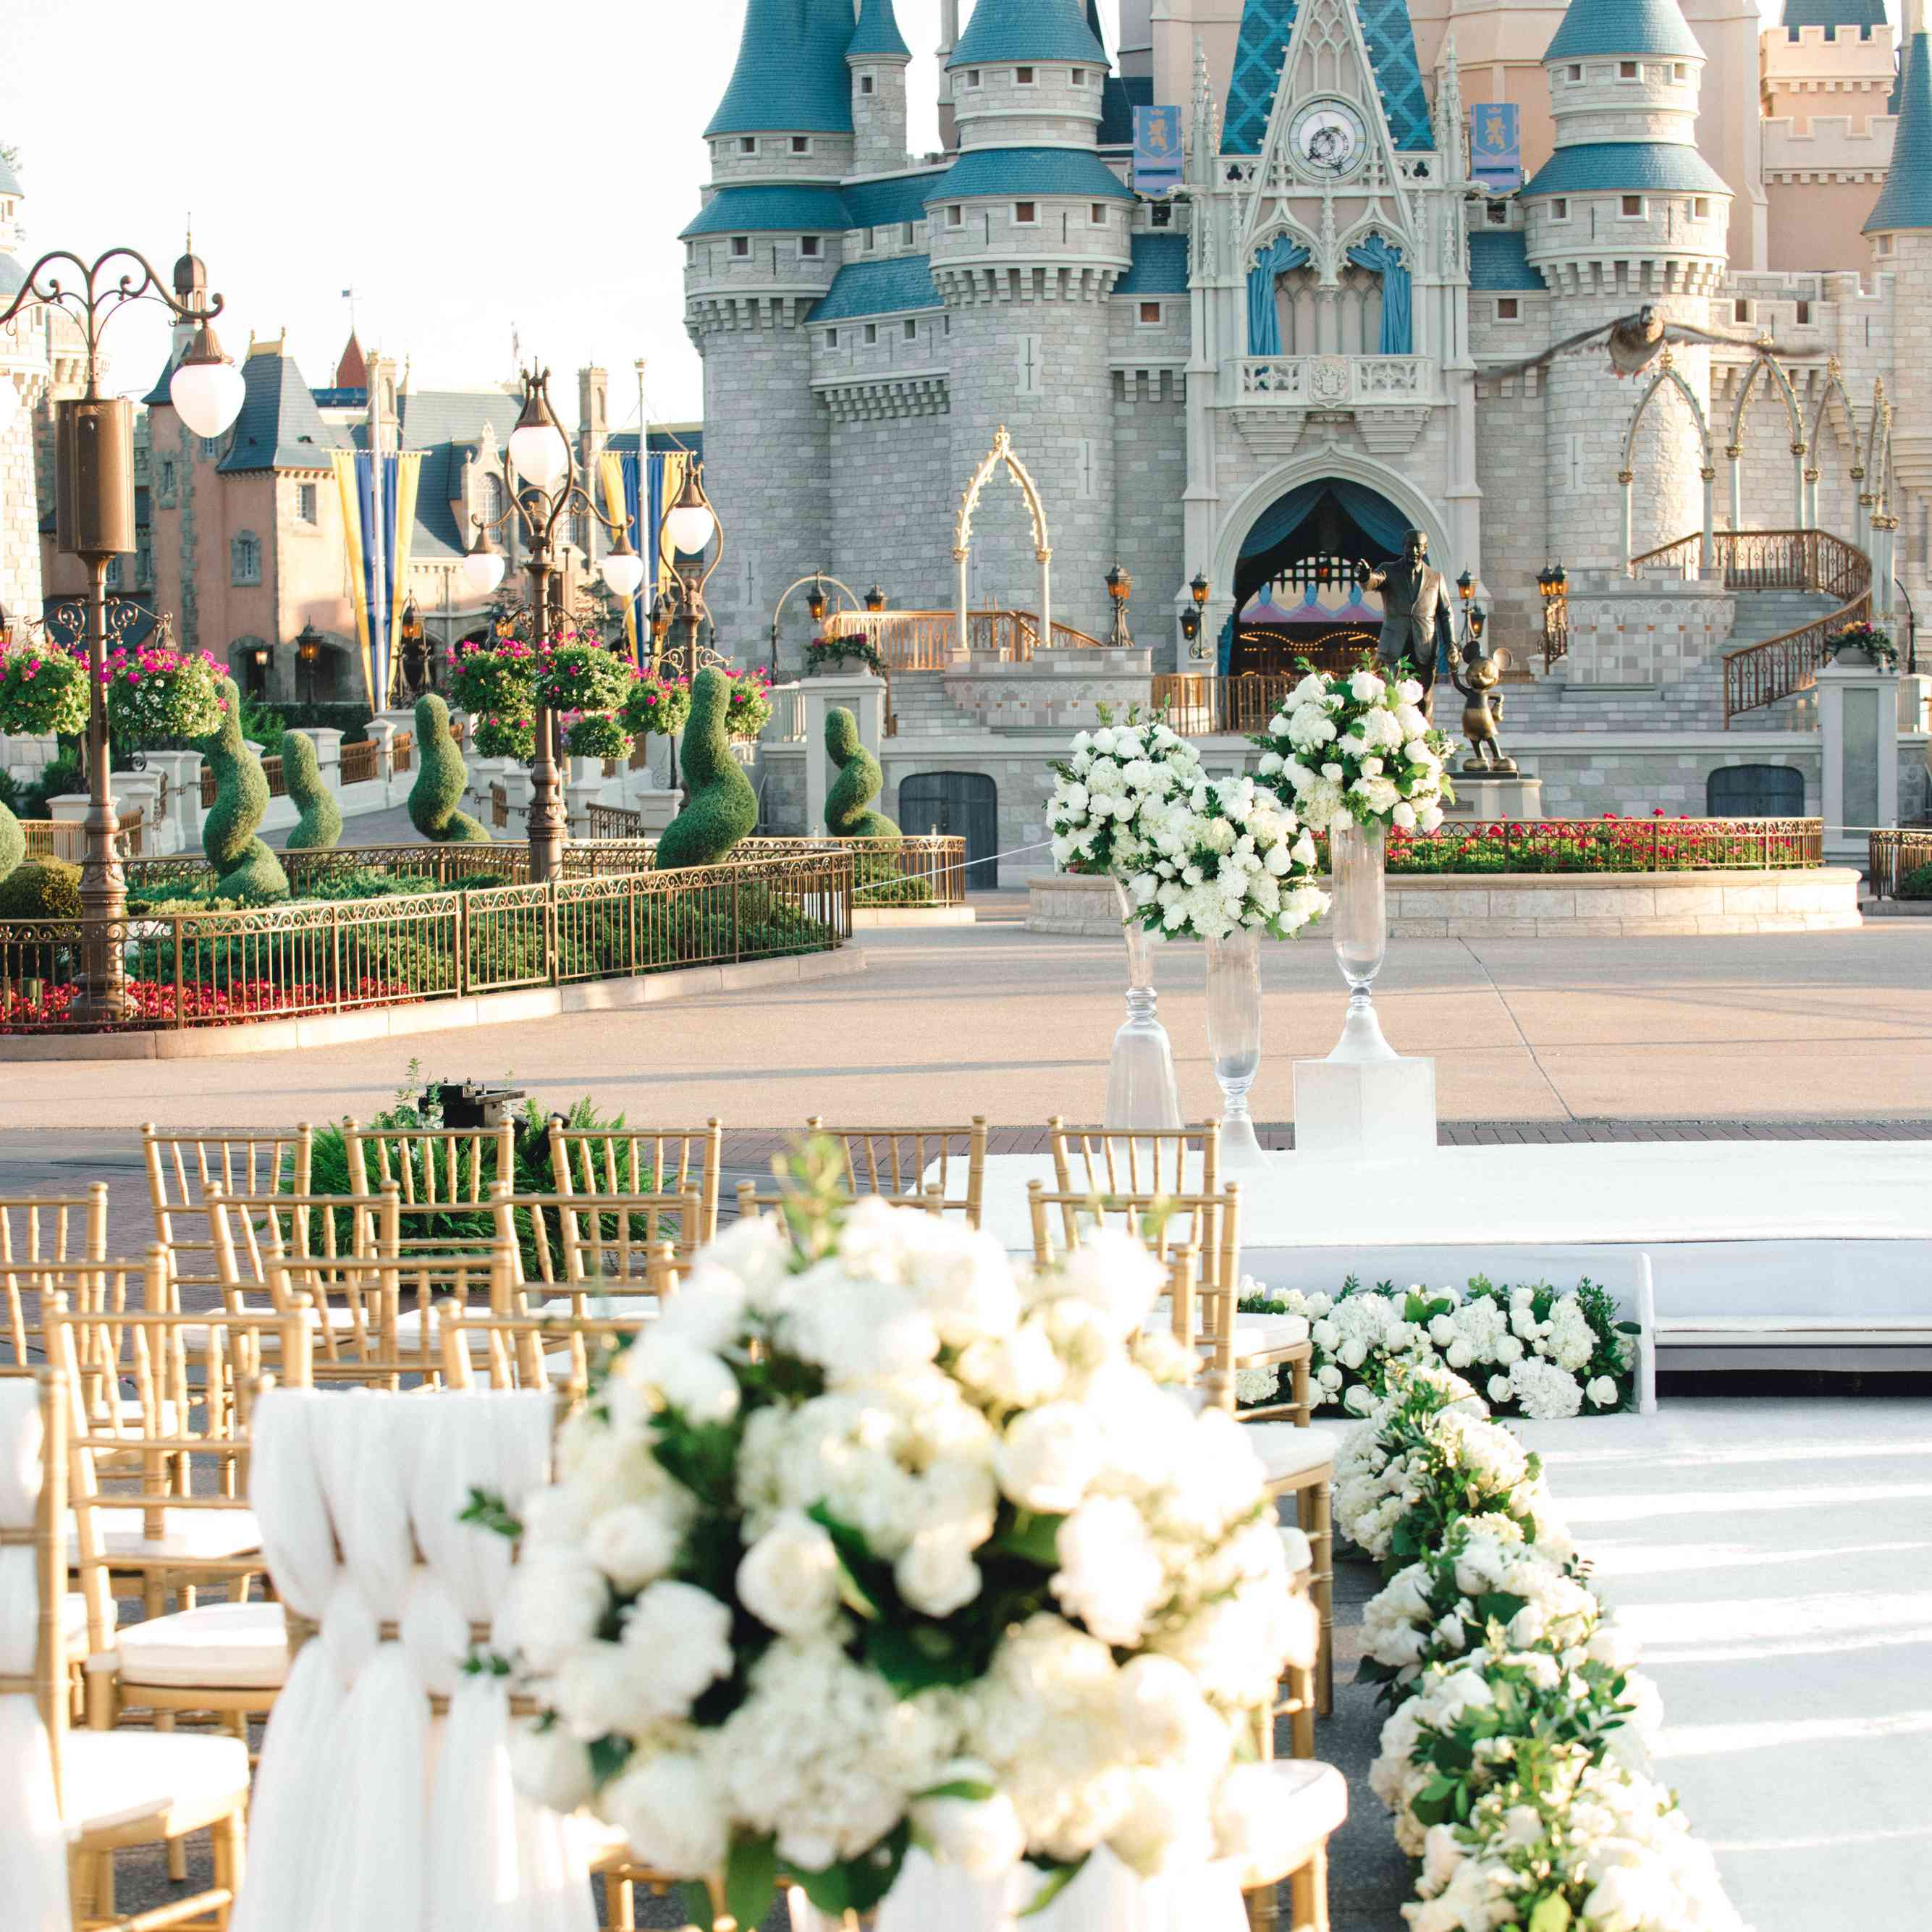 Chairs and flowers outside Cinderella's Castle.